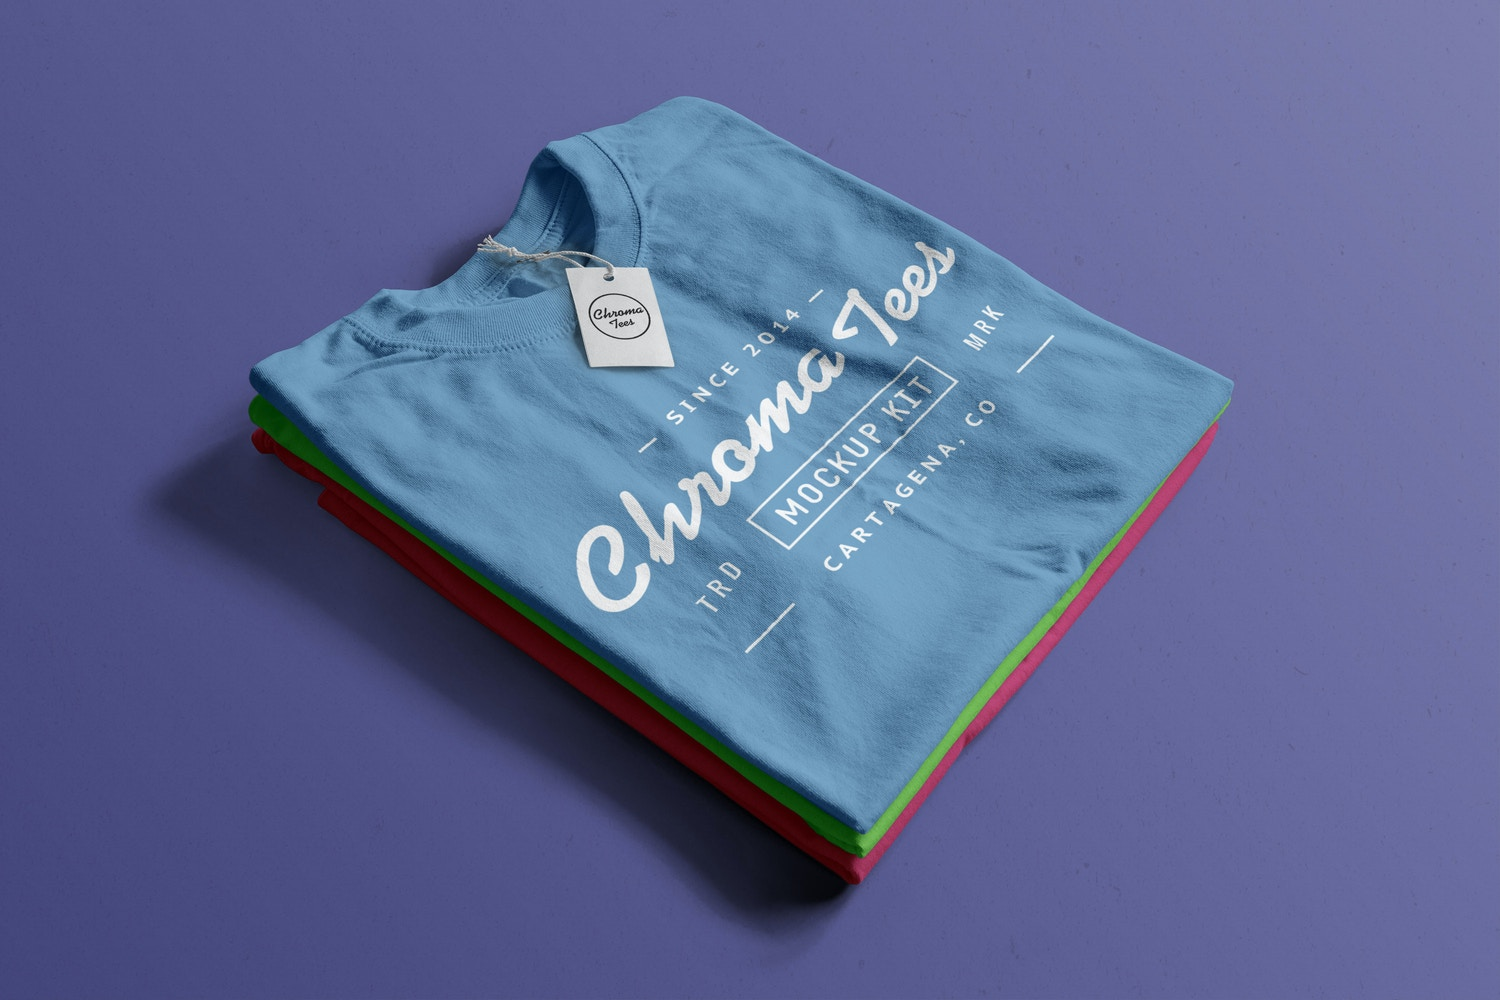 Stack of Folded T-Shirts Mockup 04 (1) by Antonio Padilla on Original Mockups